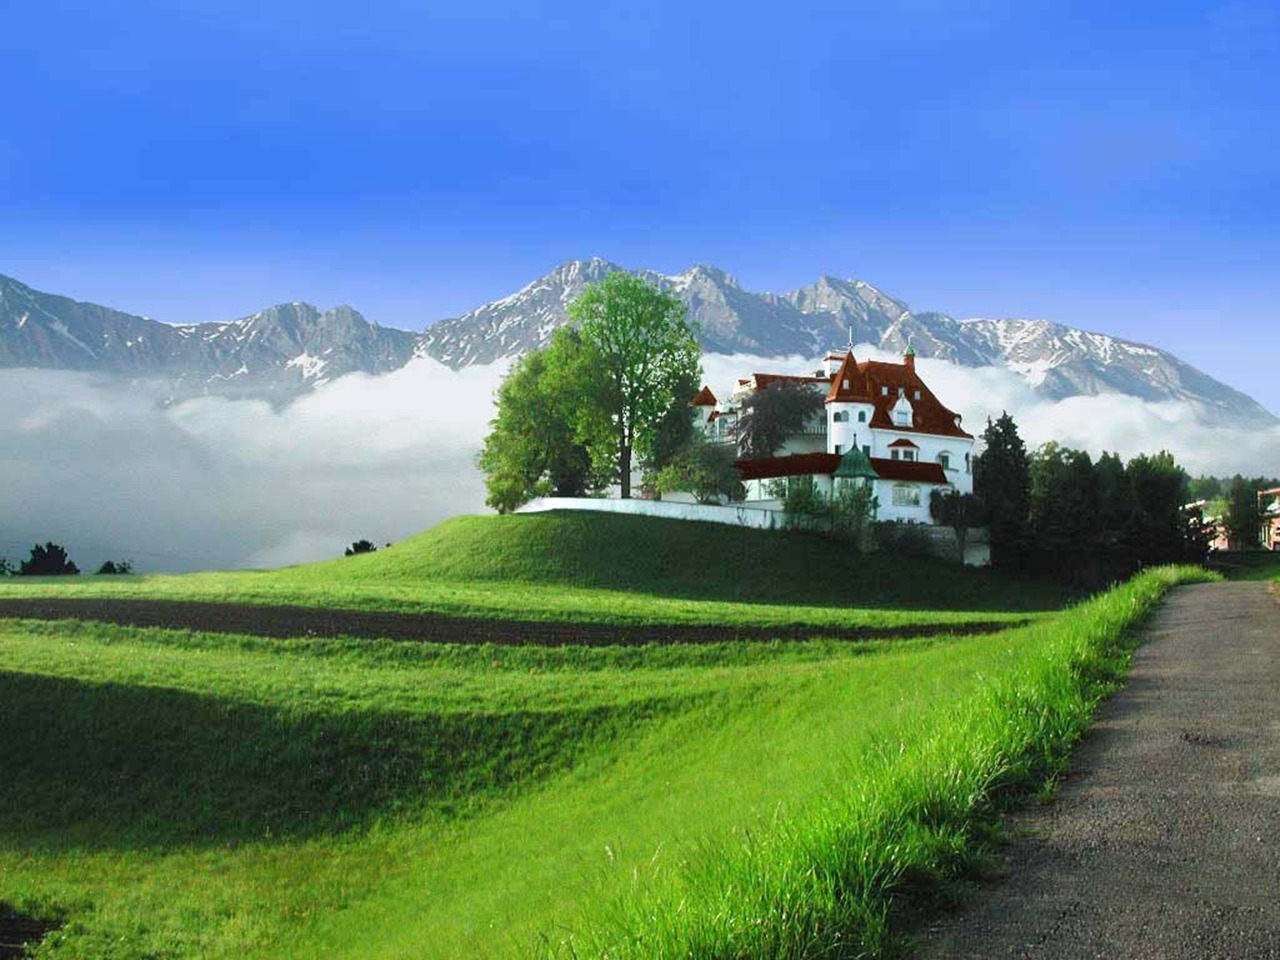 Amazing Nature Wallpapers - National Geographic Wallpaper ...